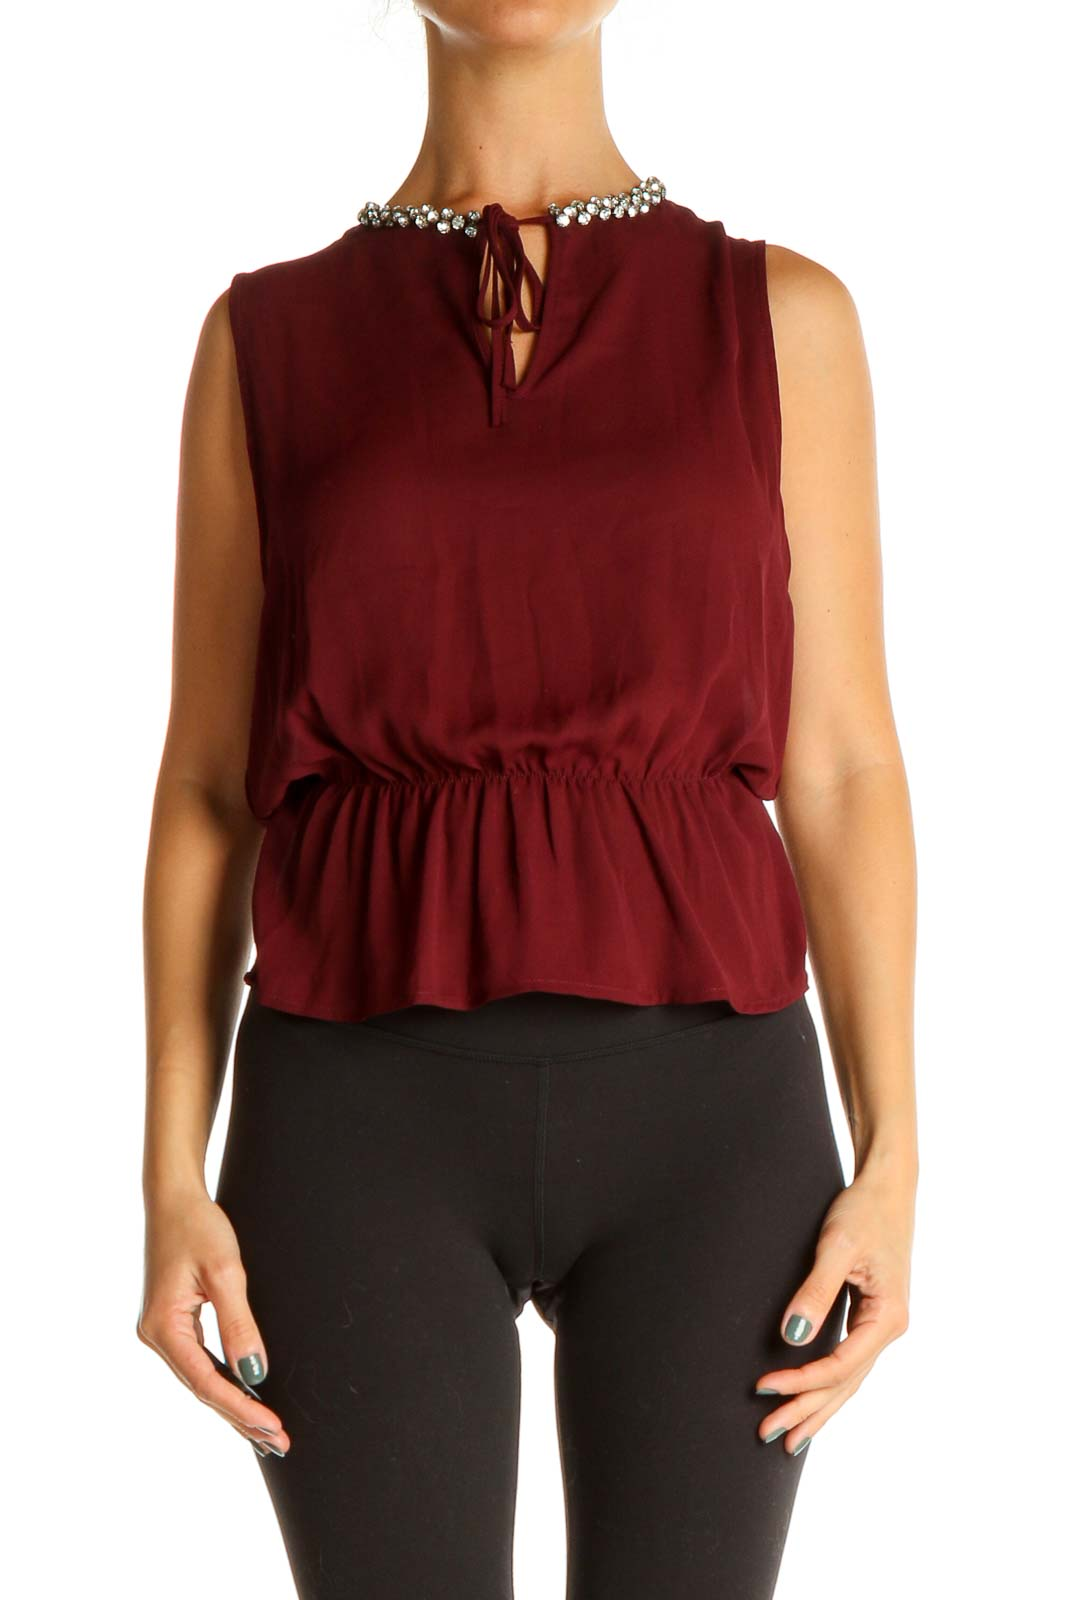 Red Sequin Chic Blouse Front